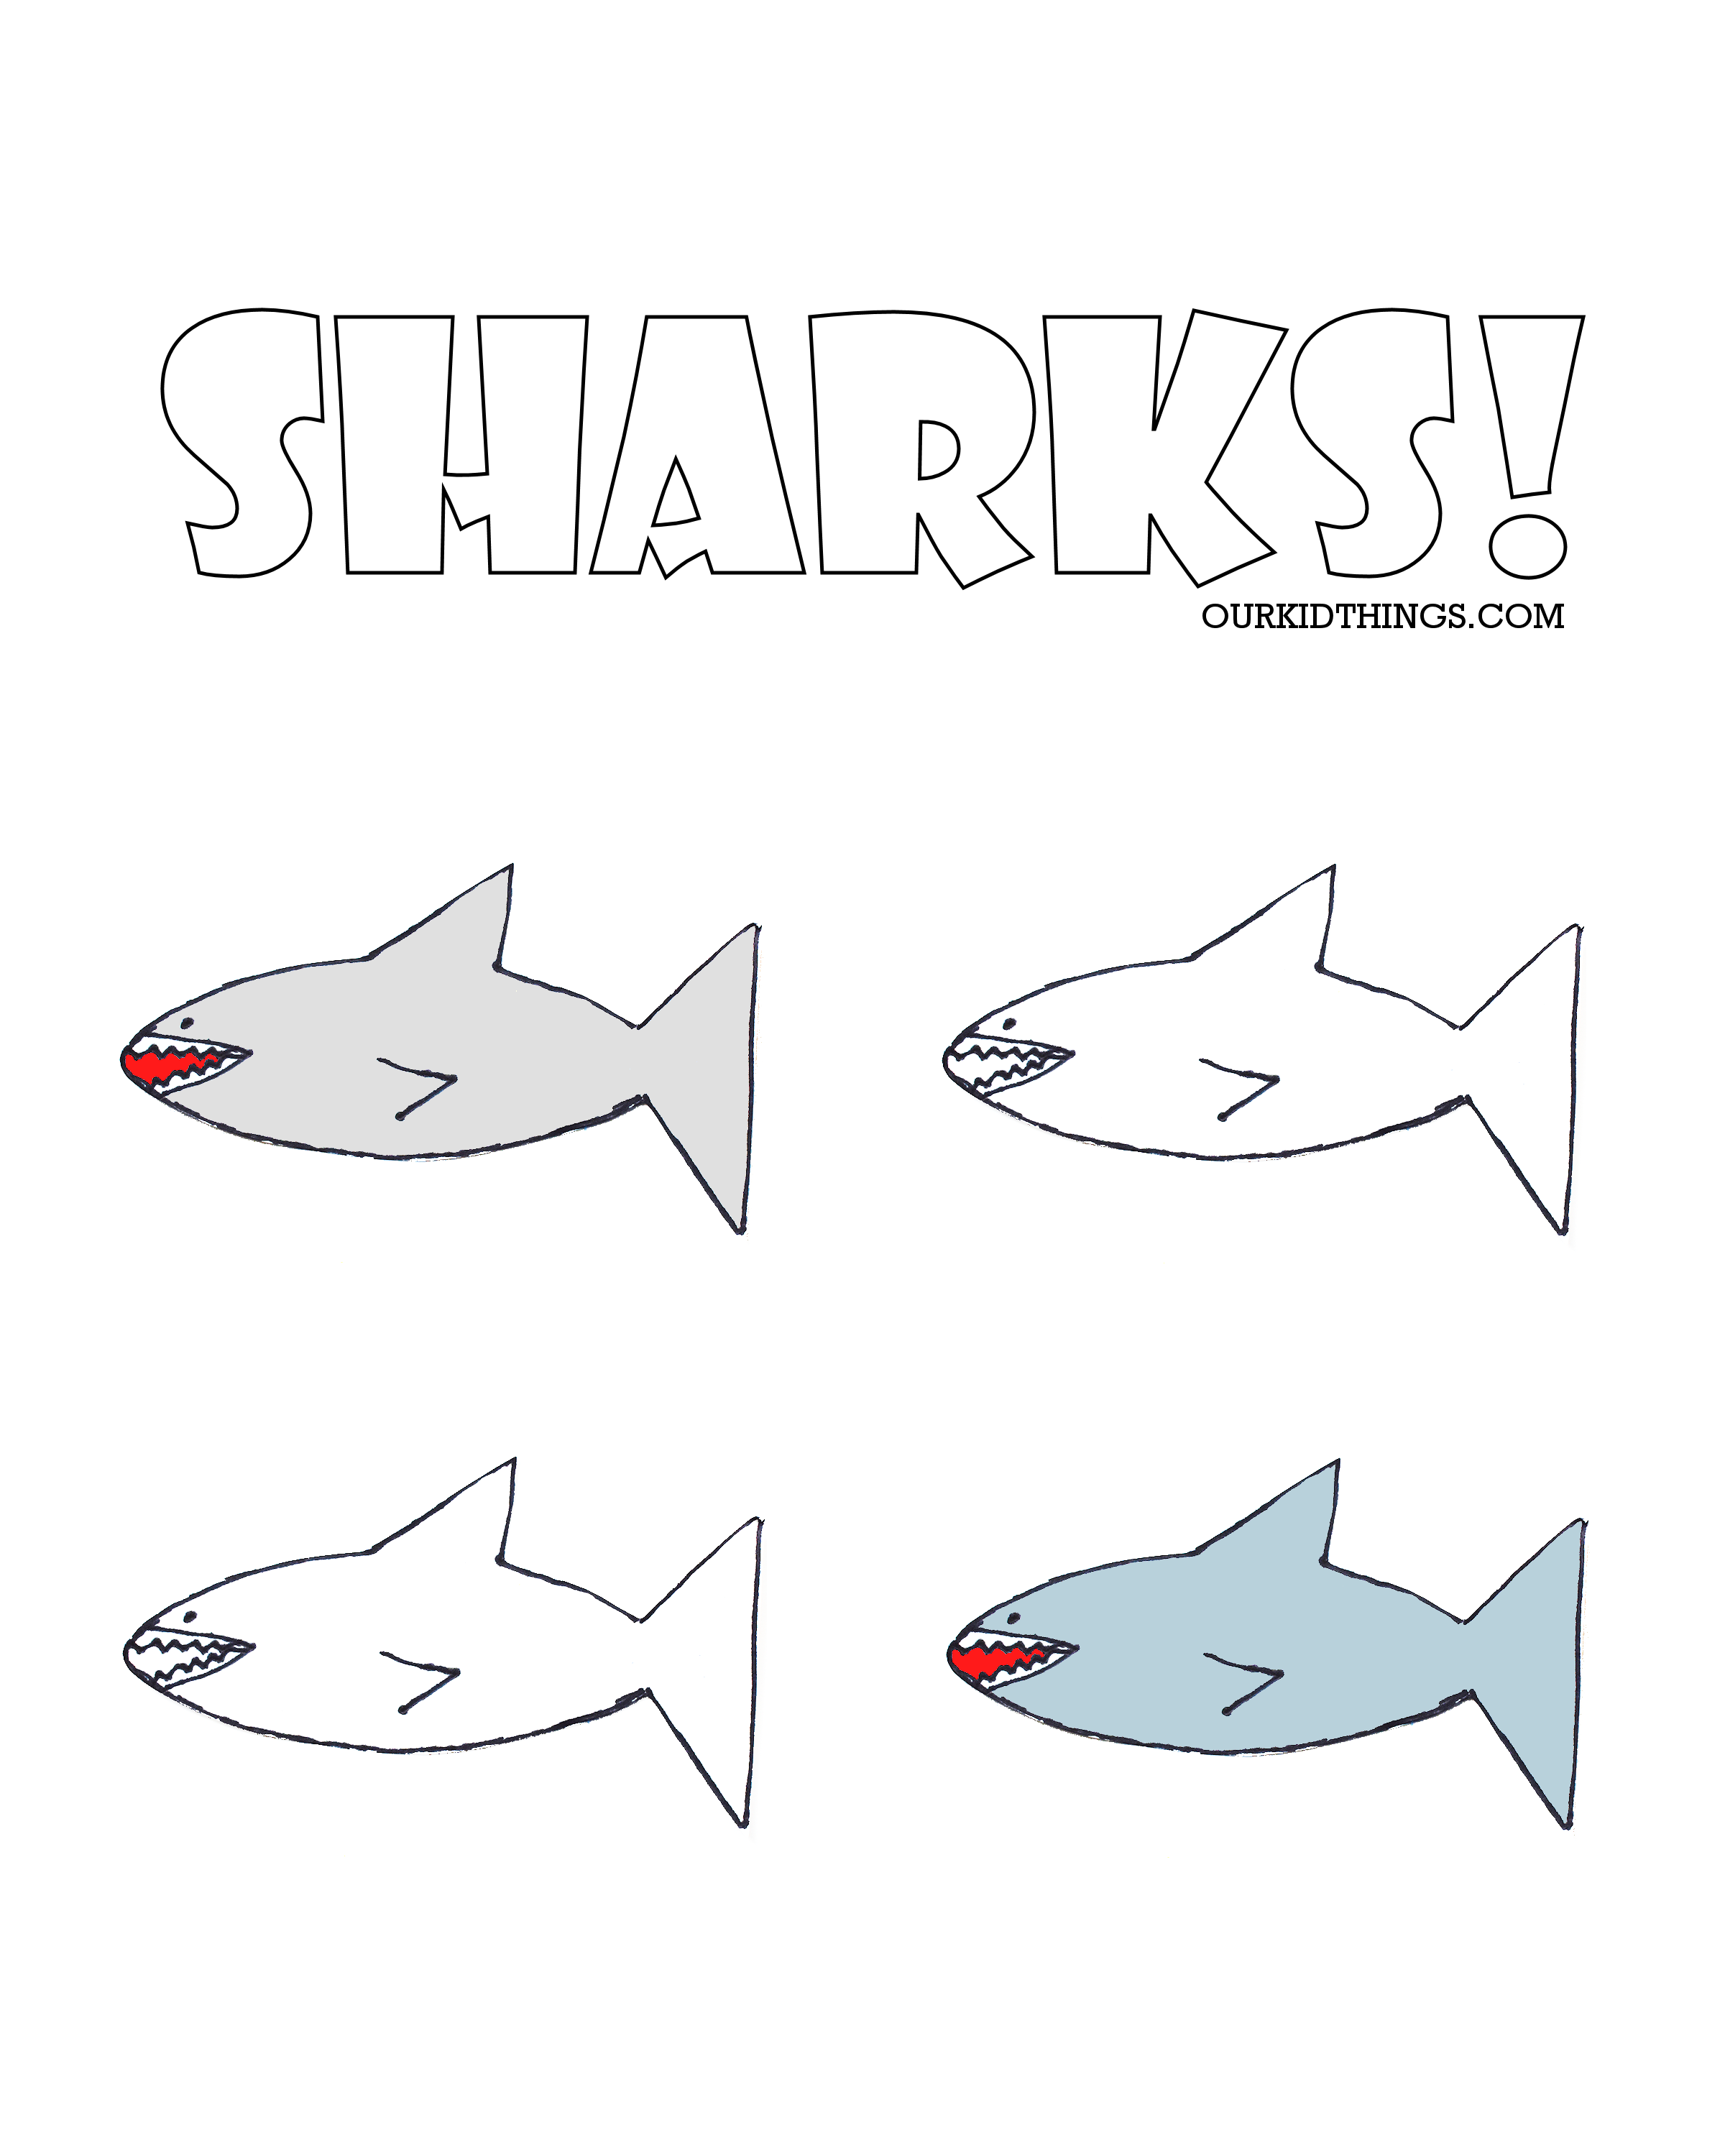 drawn sharks template free printable our kid things